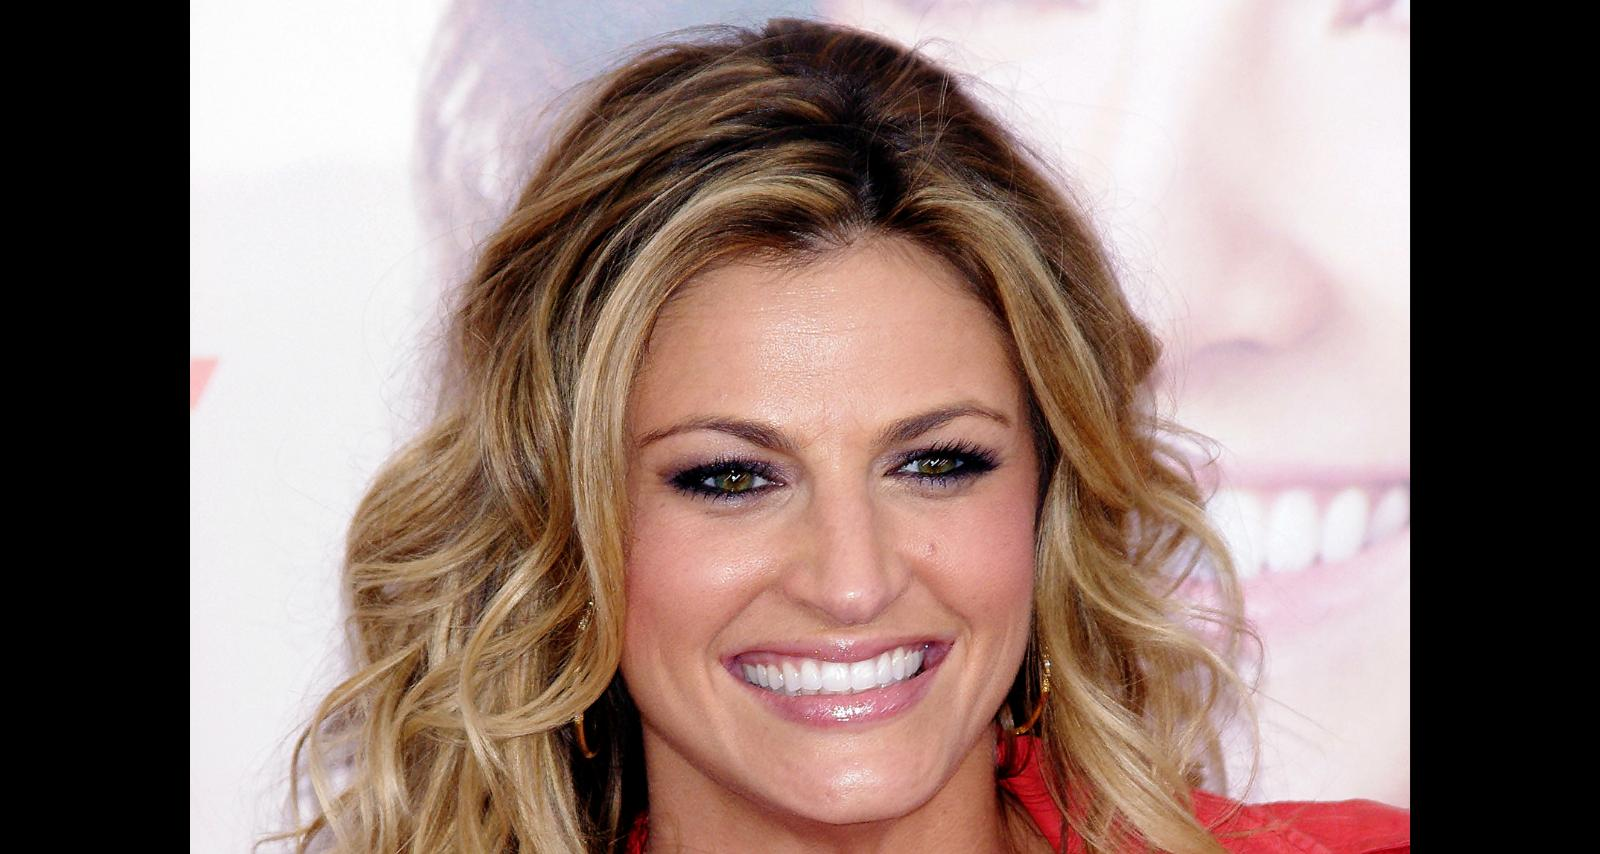 Erin Andrews Net Worth from Peephole Lawsuit